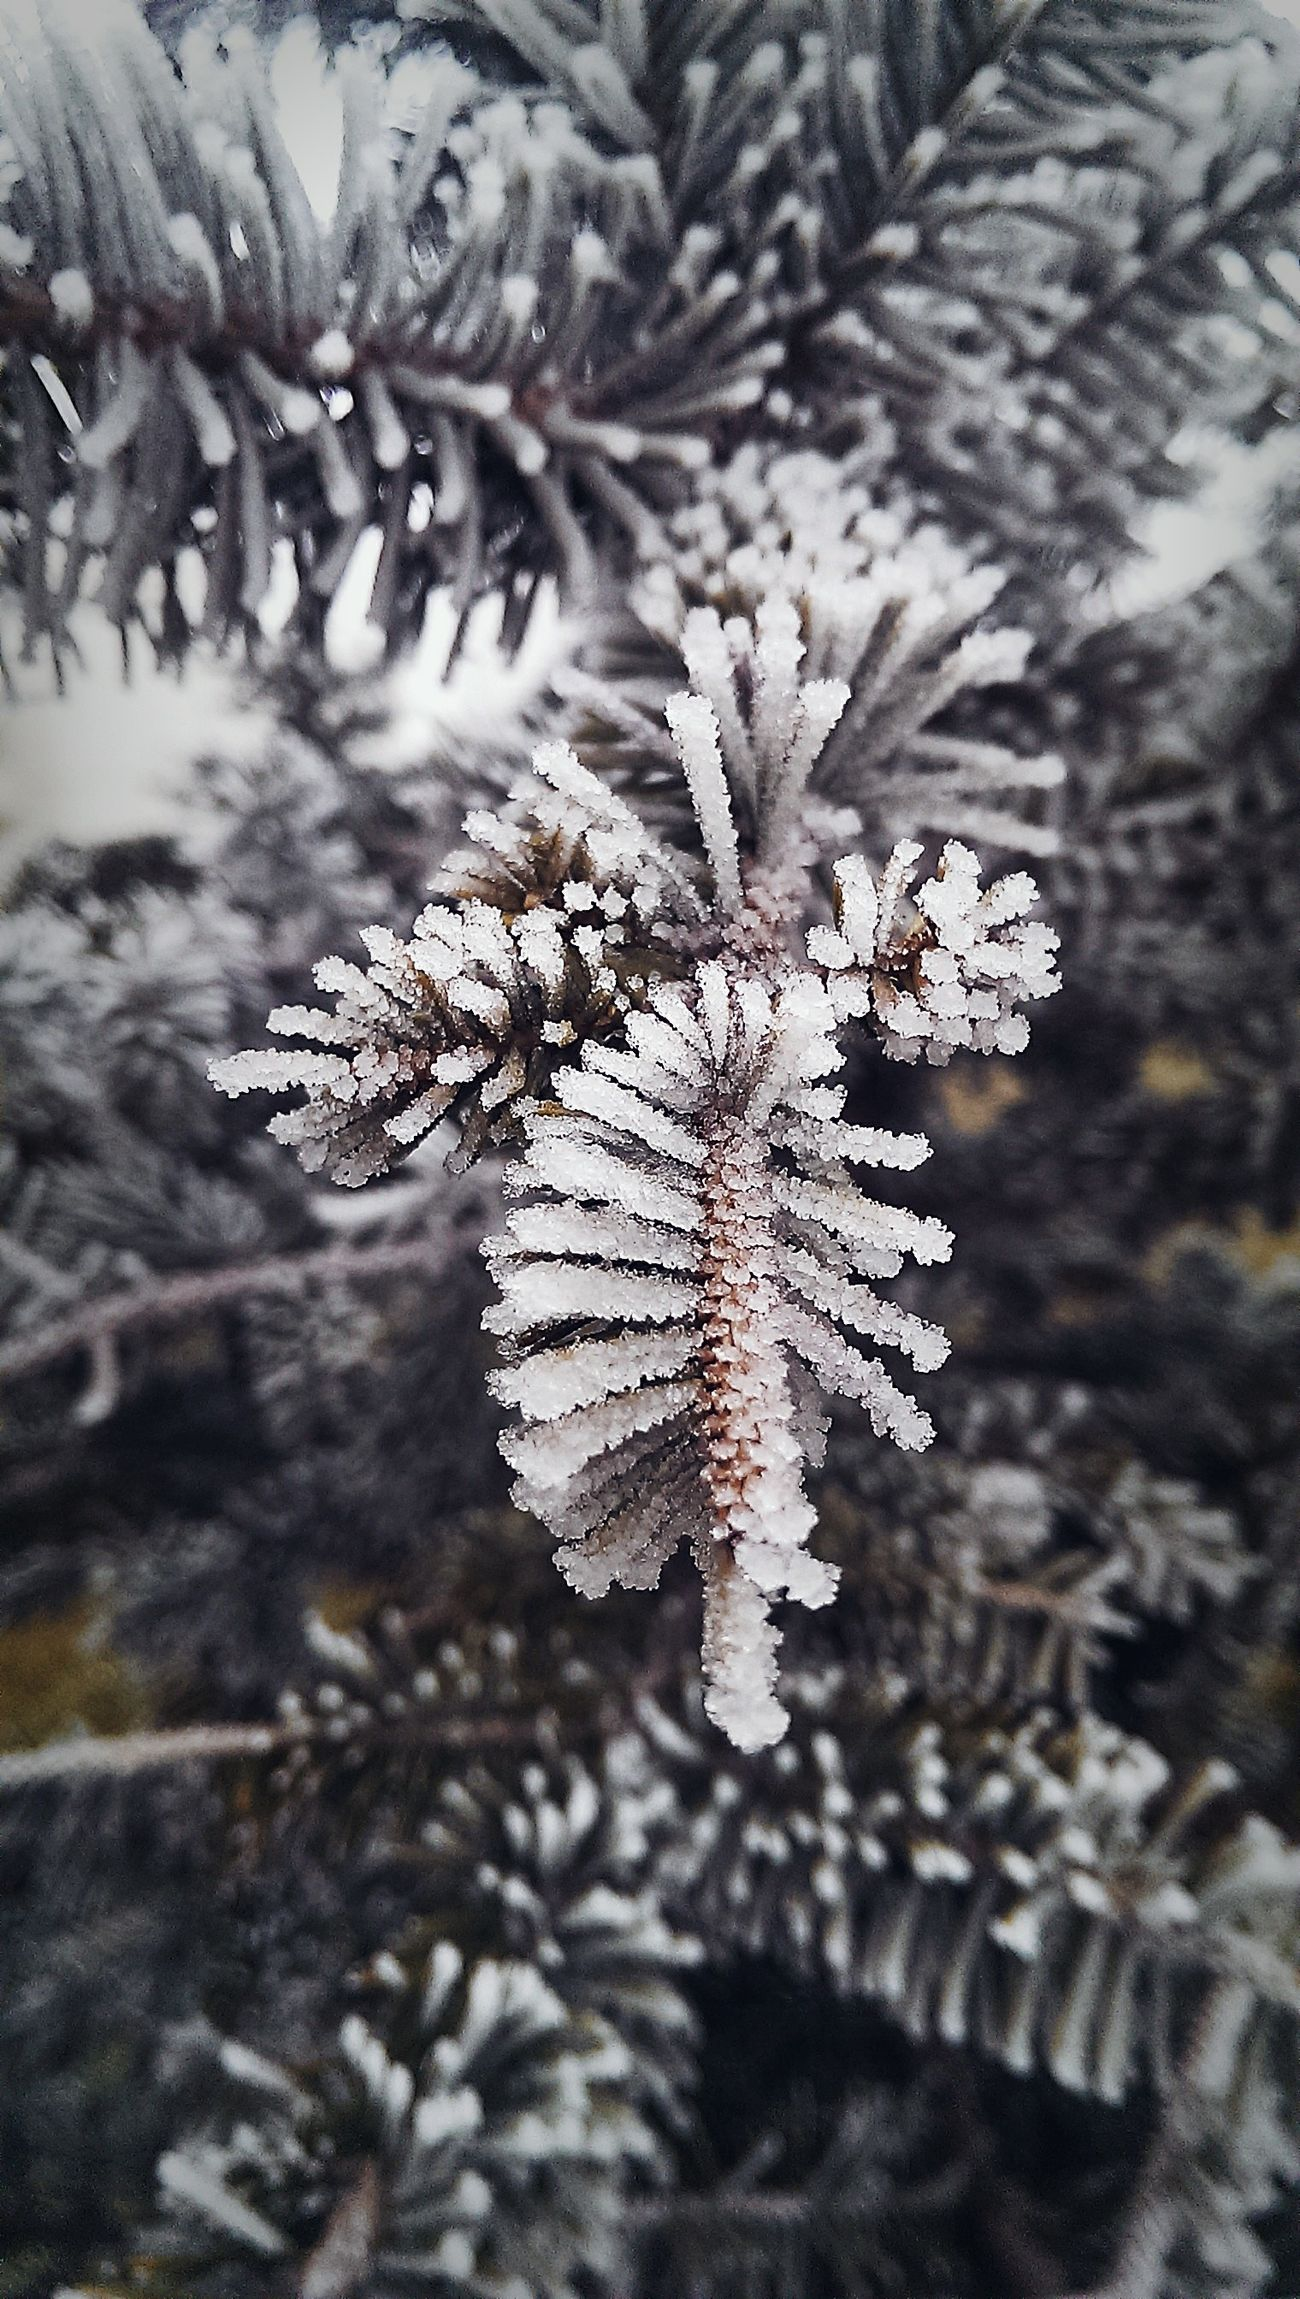 EyeEm Eye4photography  EyeEm Best Shots EyeEm Best Edits EyeEm Nature Lover Nature_collection Naturelovers Nature Nature_perfection Winter Wintertime Winter2016 ❄ Hoarfrost Natural Beauty Taking Photos Winter2016